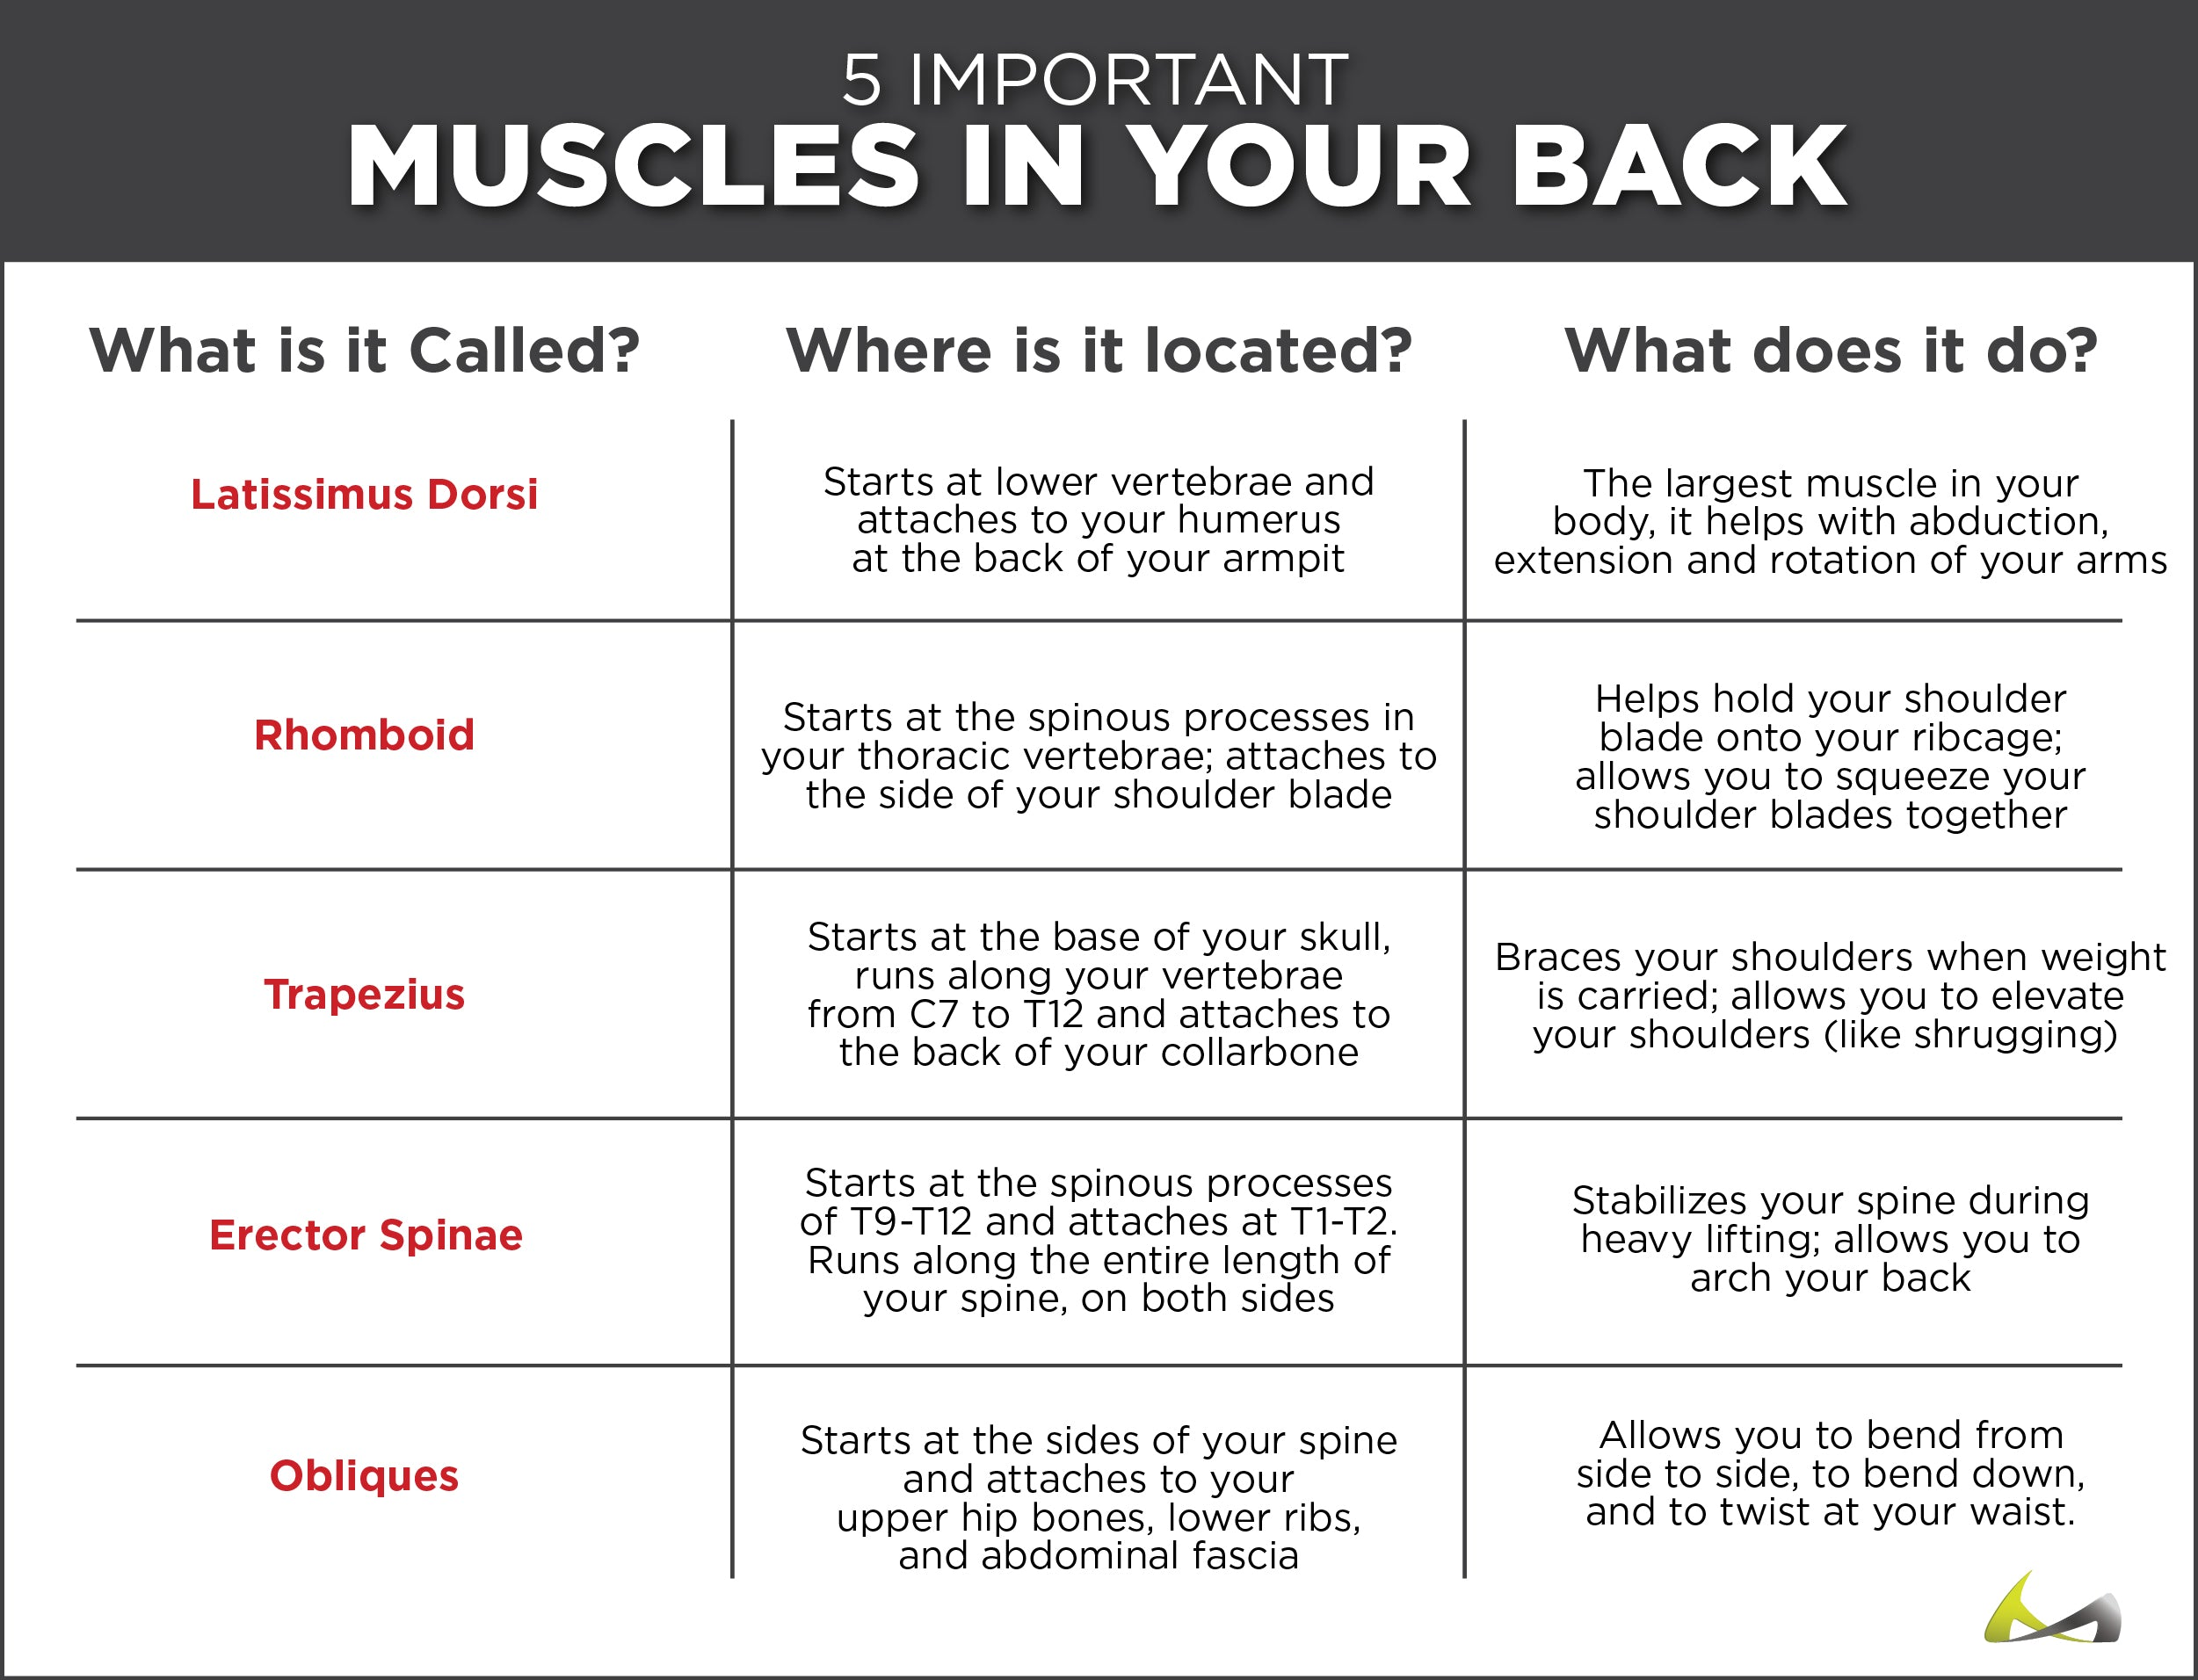 list of the muscles in your back, where they originate and what they do